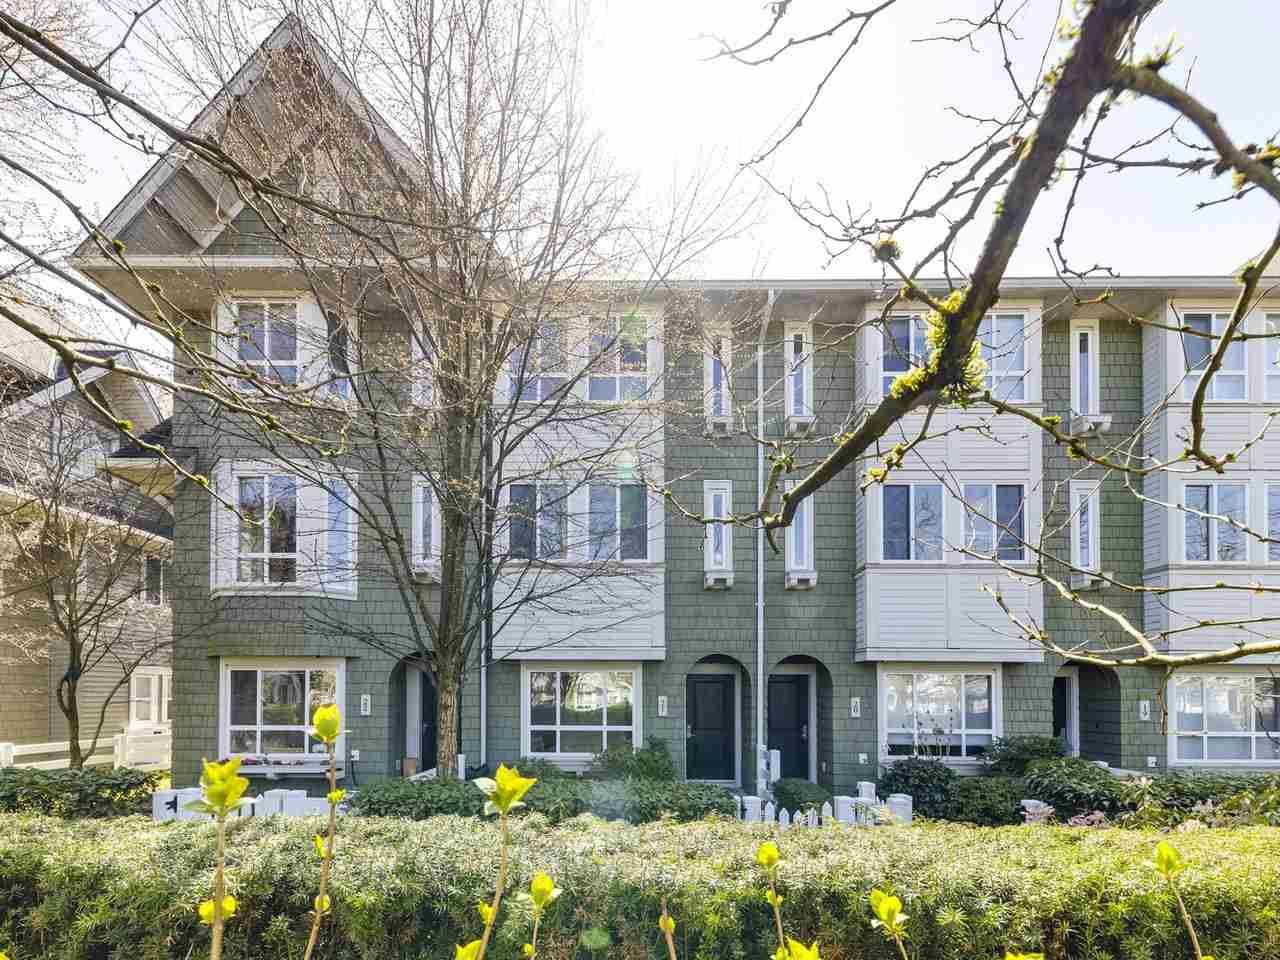 """Main Photo: 21 2418 AVON Place in Port Coquitlam: Riverwood Townhouse for sale in """"Links"""" : MLS®# R2562648"""